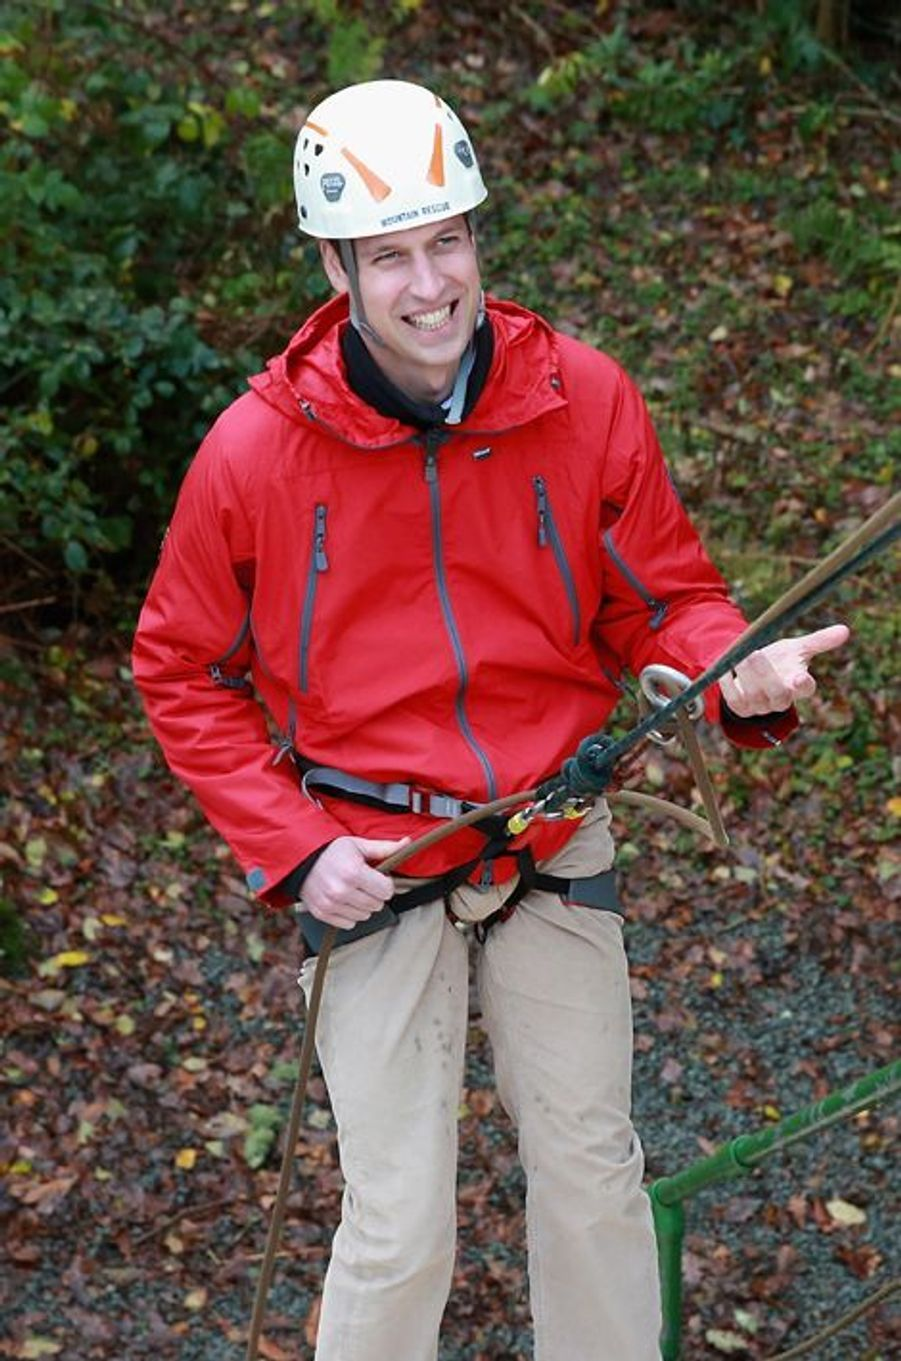 Le prince William à Capel Curig en Galles du Nord, le 20 novembre 2015